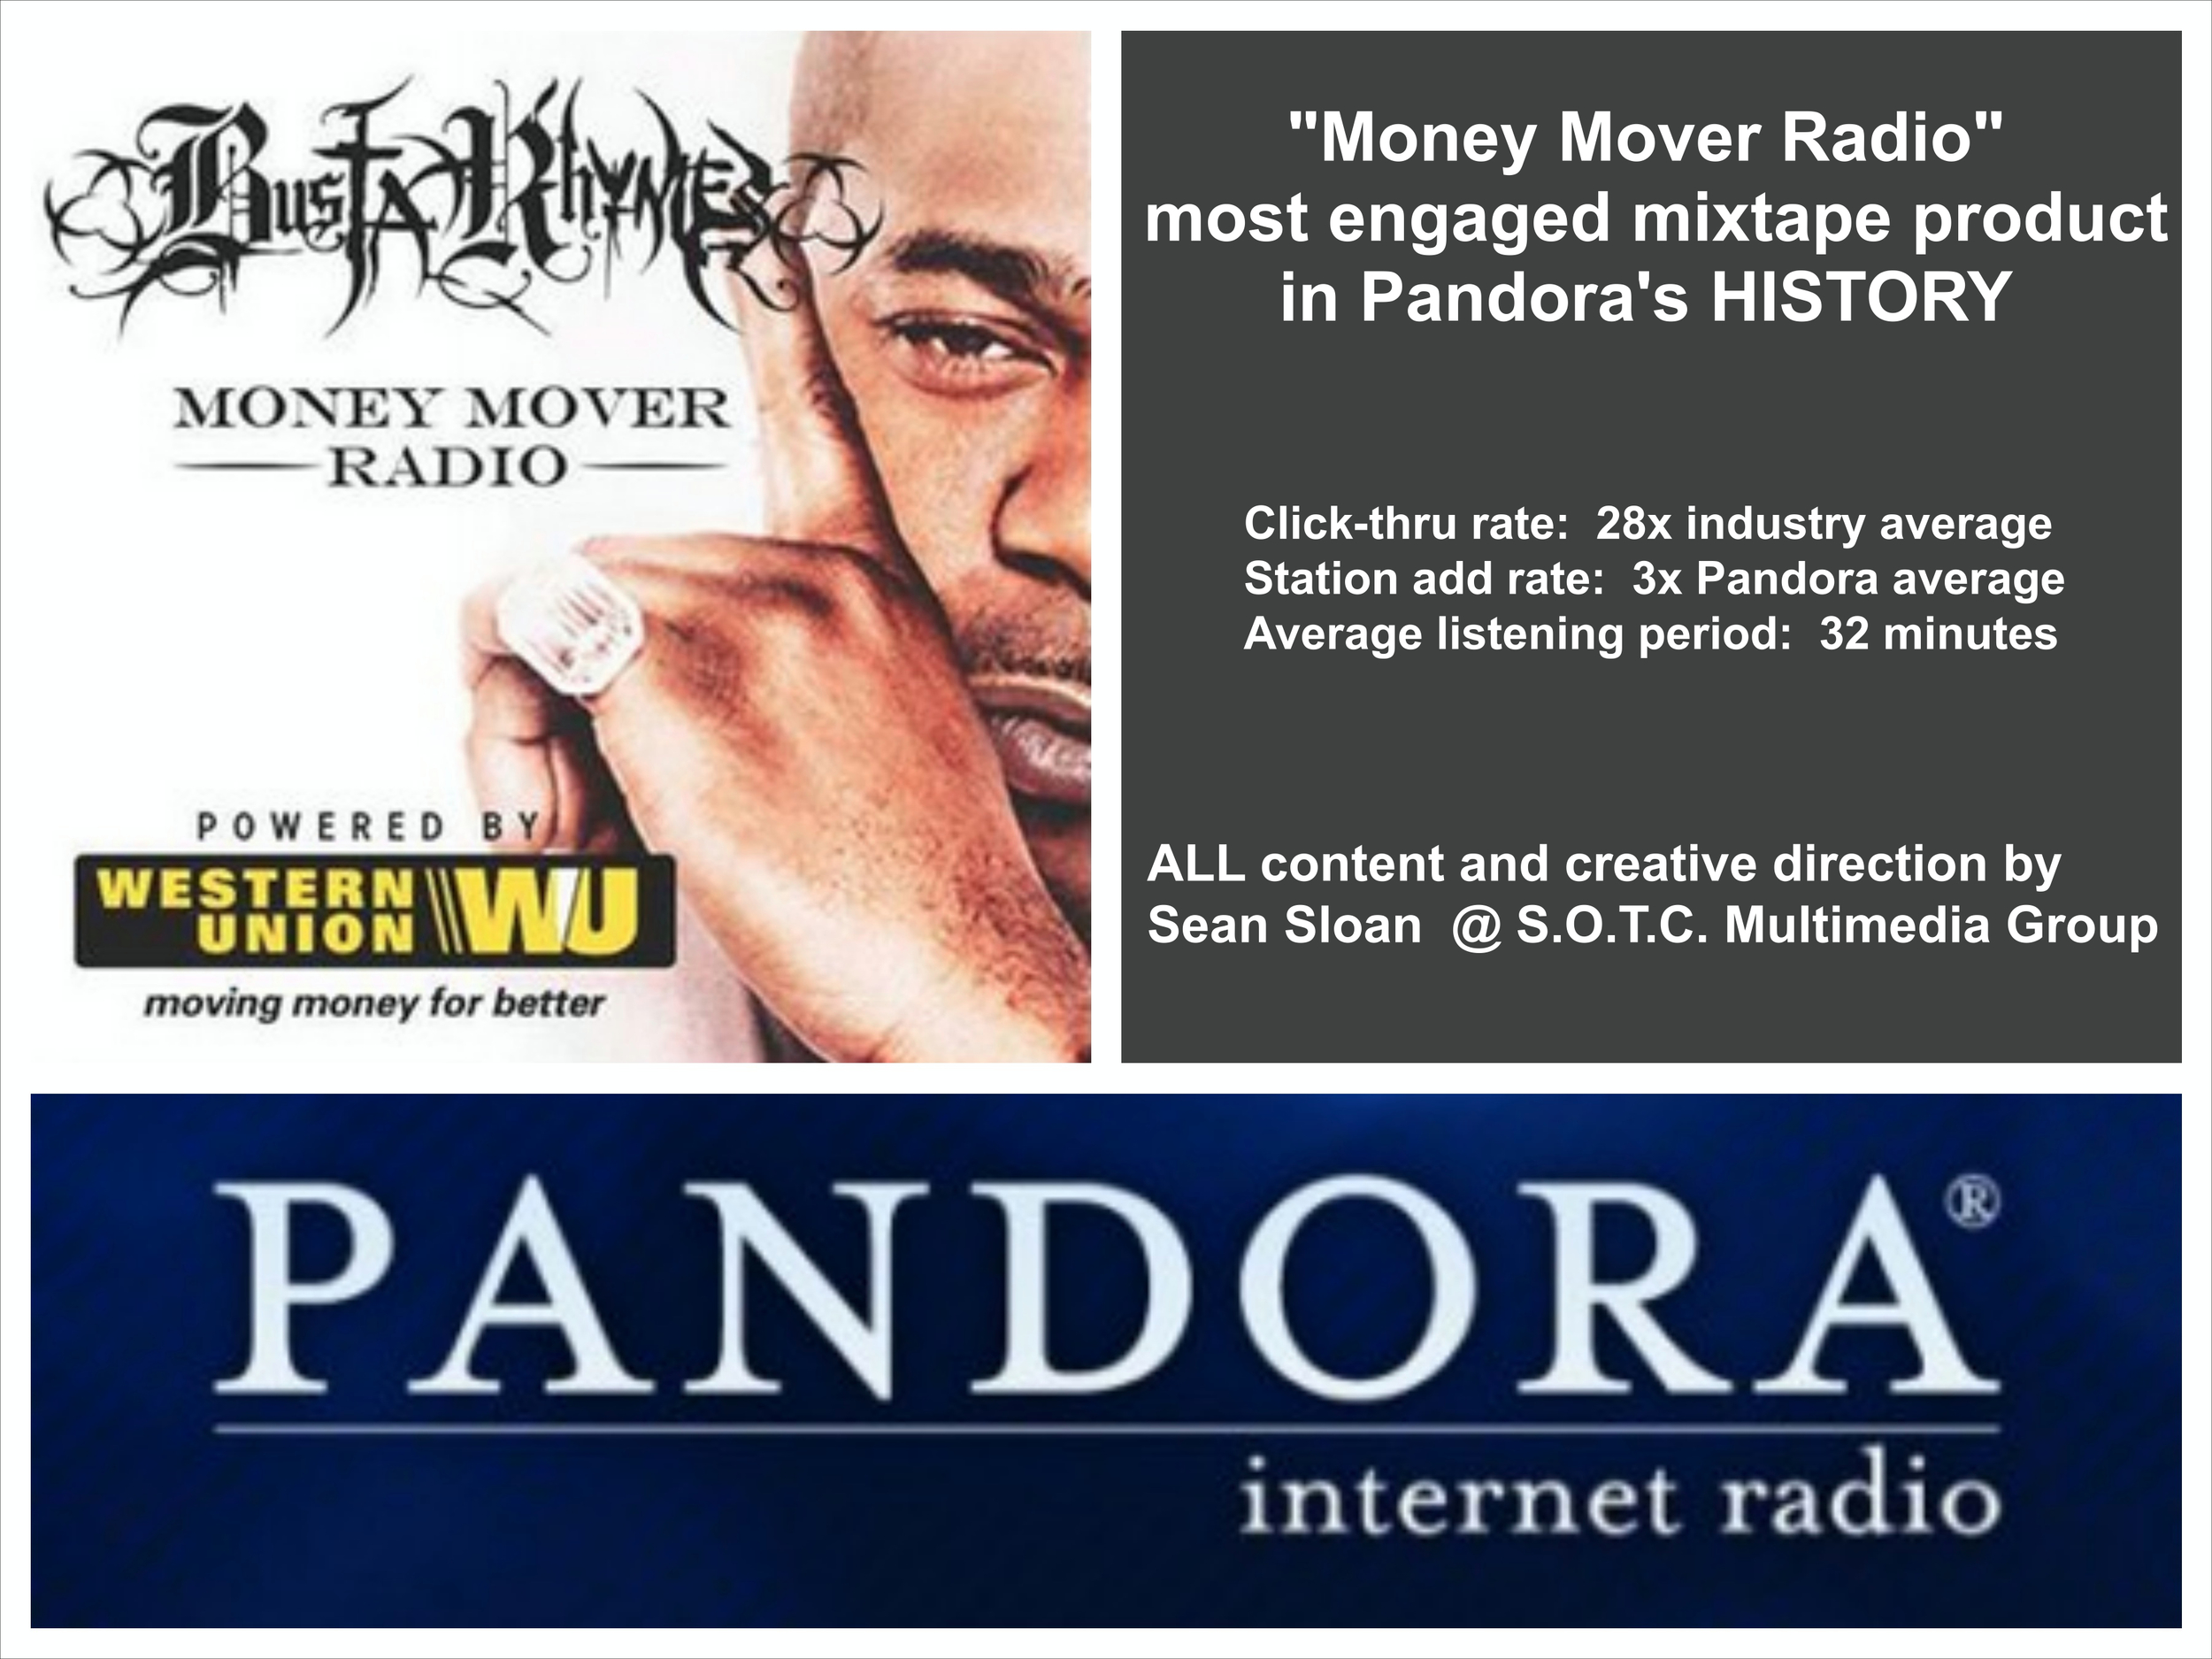 WebsiteHomepage PandoraWUBRhymes Collage MAIN.jpg